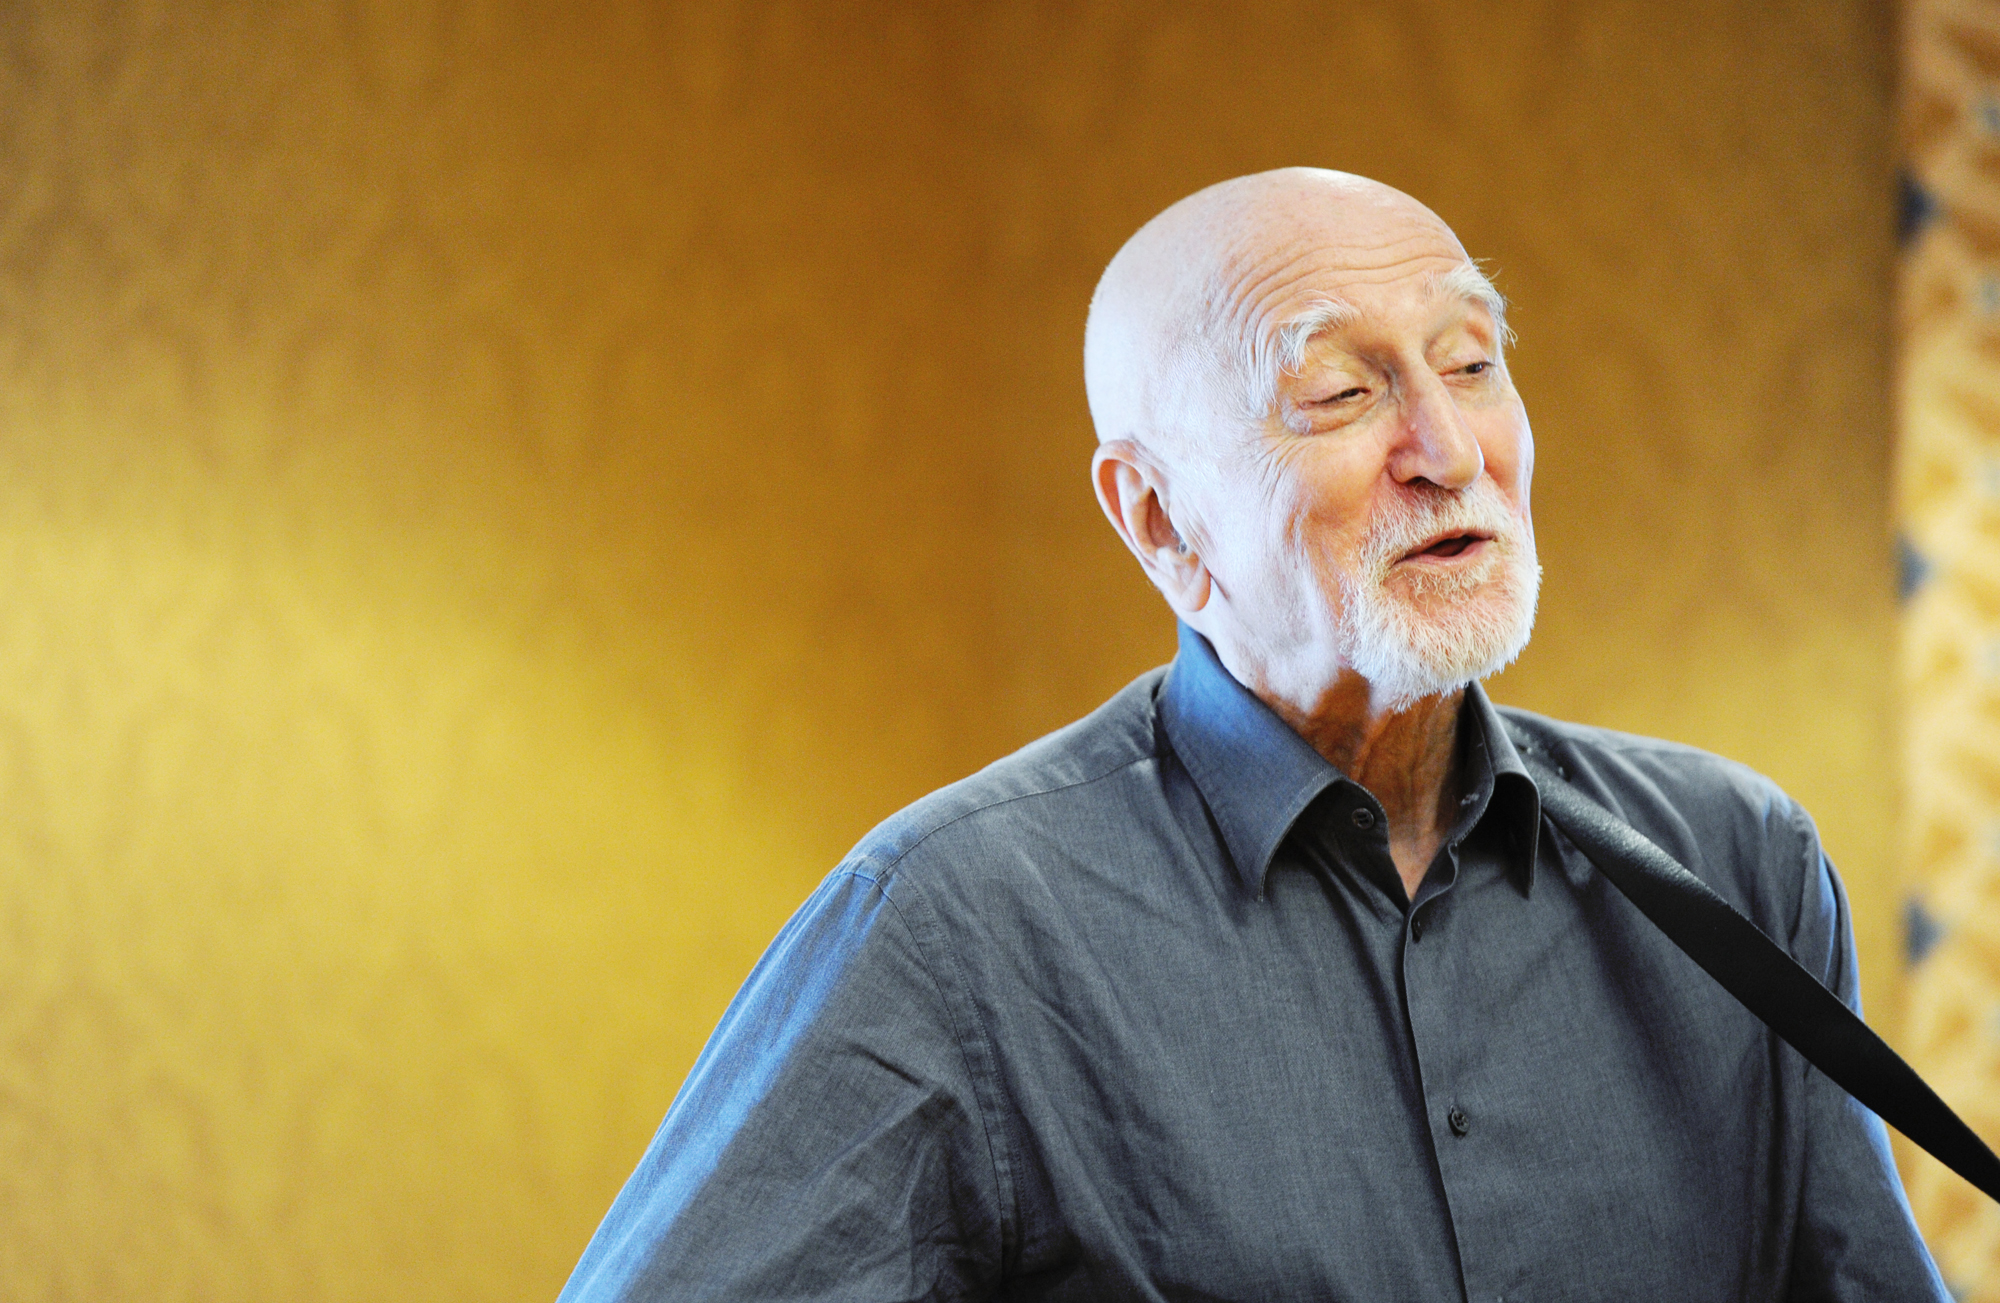 'Sopranos' actor Dominic Chianese sings for seniors at Stella Maris